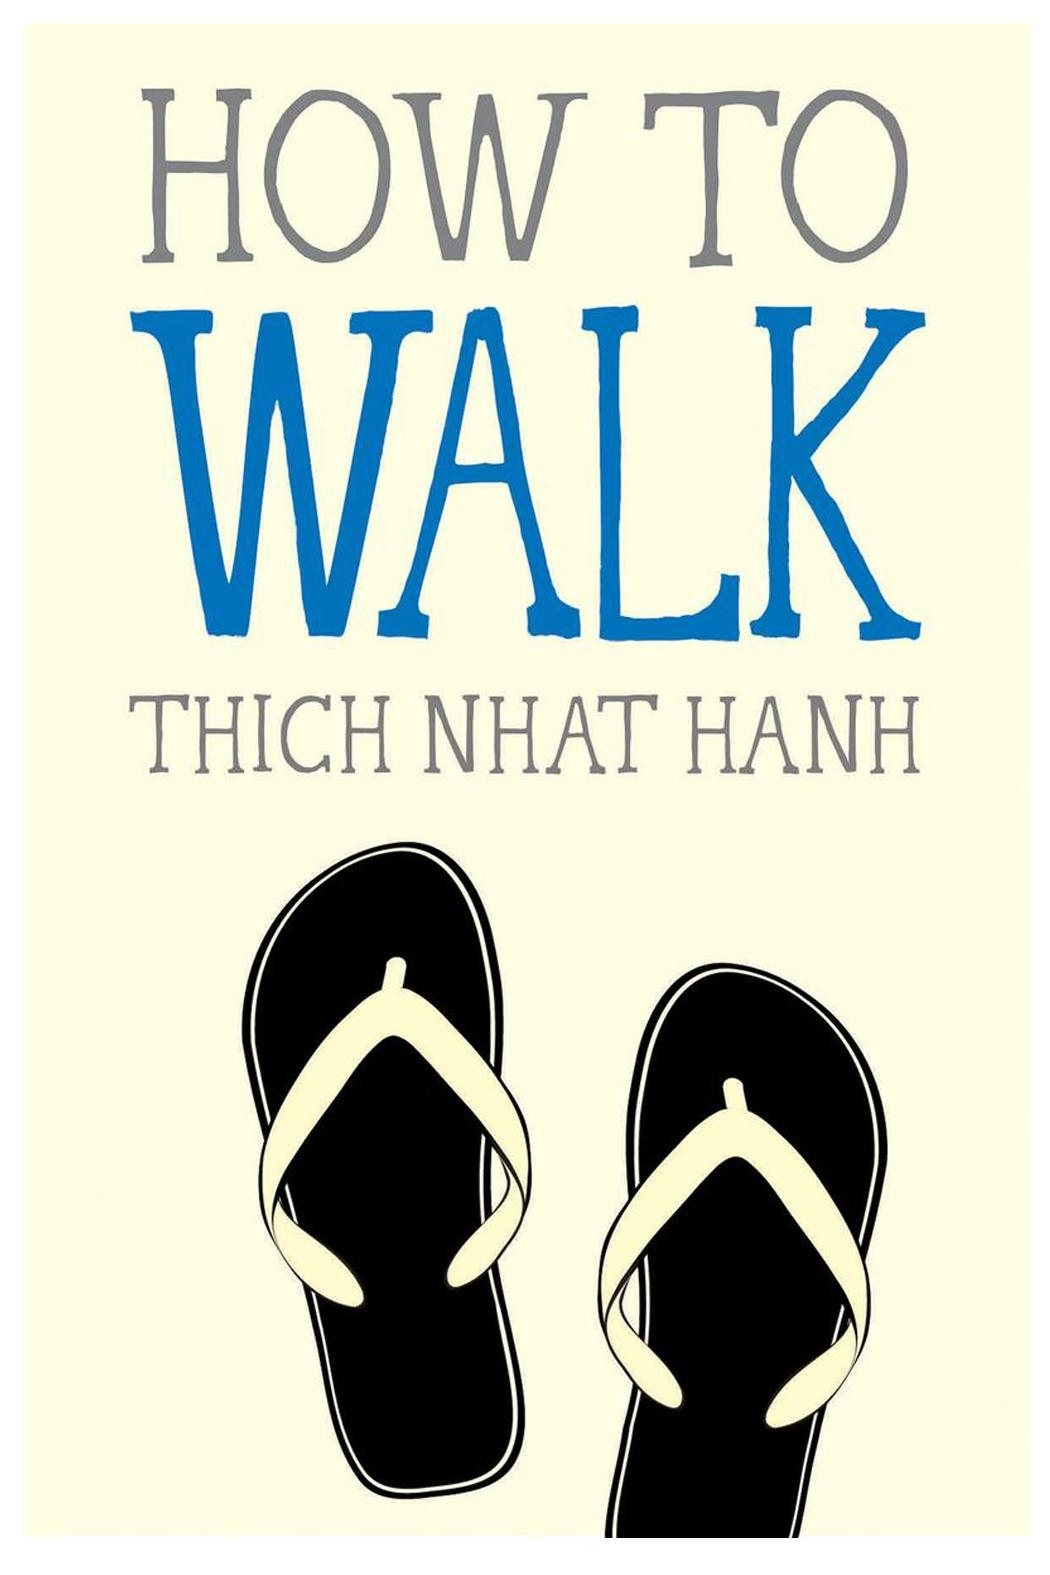 tu-anh boutique How To Walk - Main Image